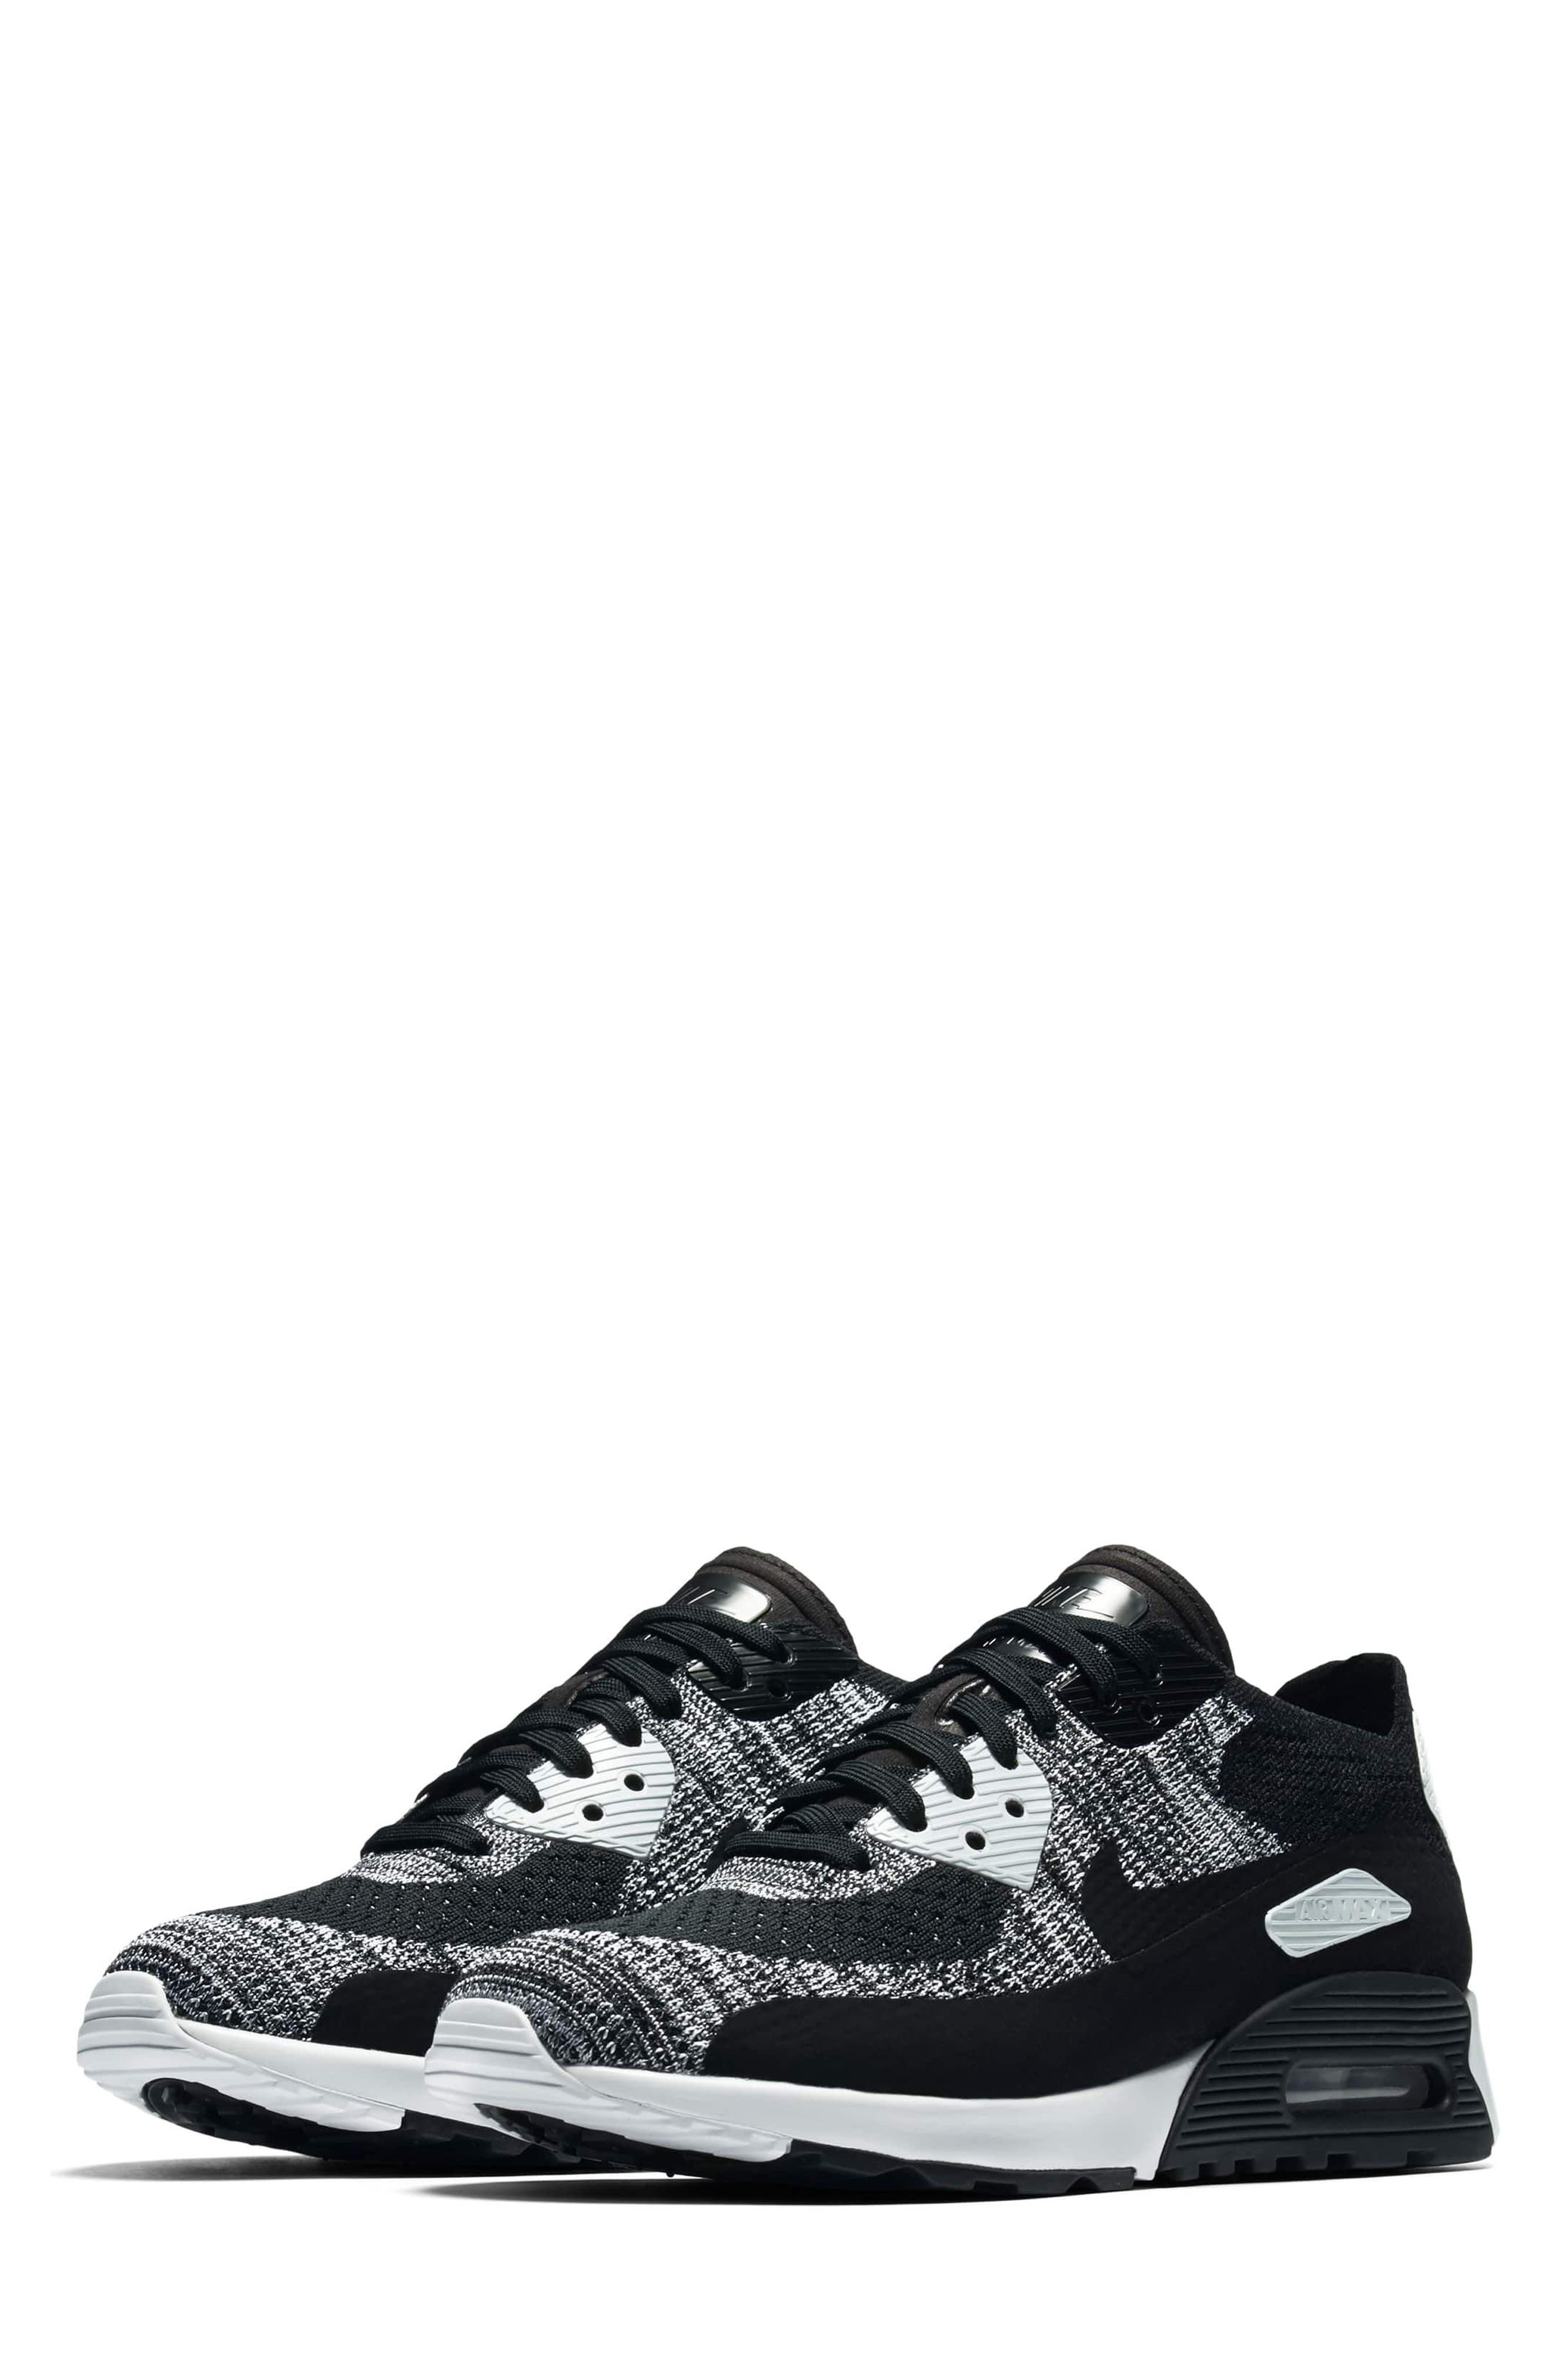 Air Max 90 Flyknit Ultra 2.0 Sneaker,                             Main thumbnail 1, color,                             002